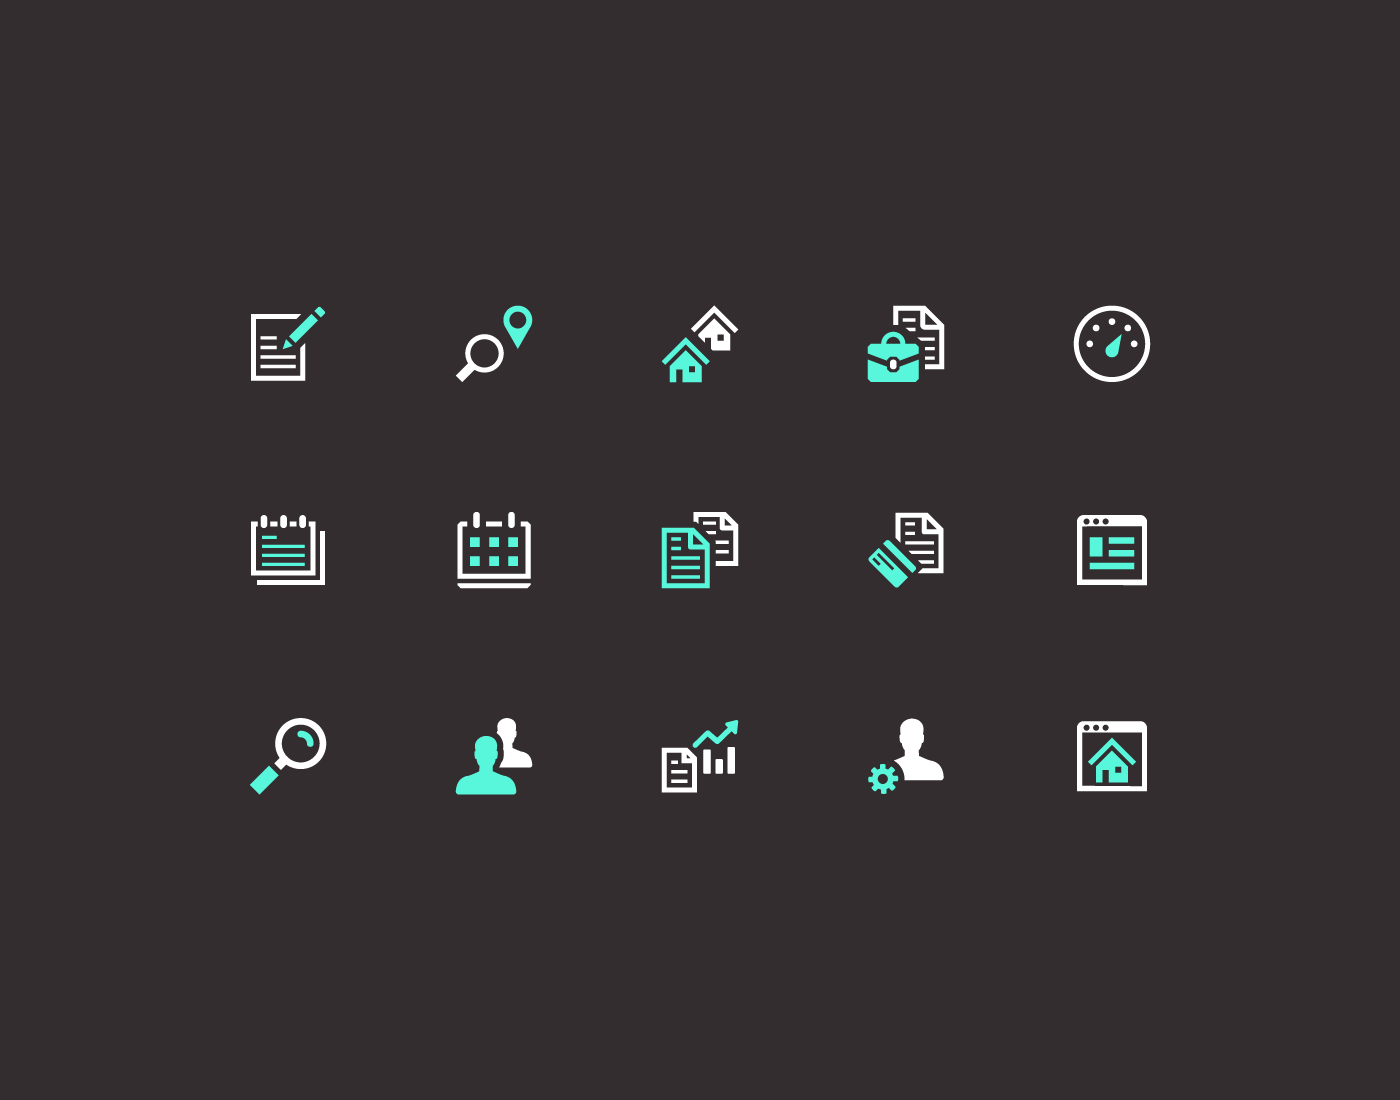 Icon UI Web Website vector flat simple icons freebies icons set